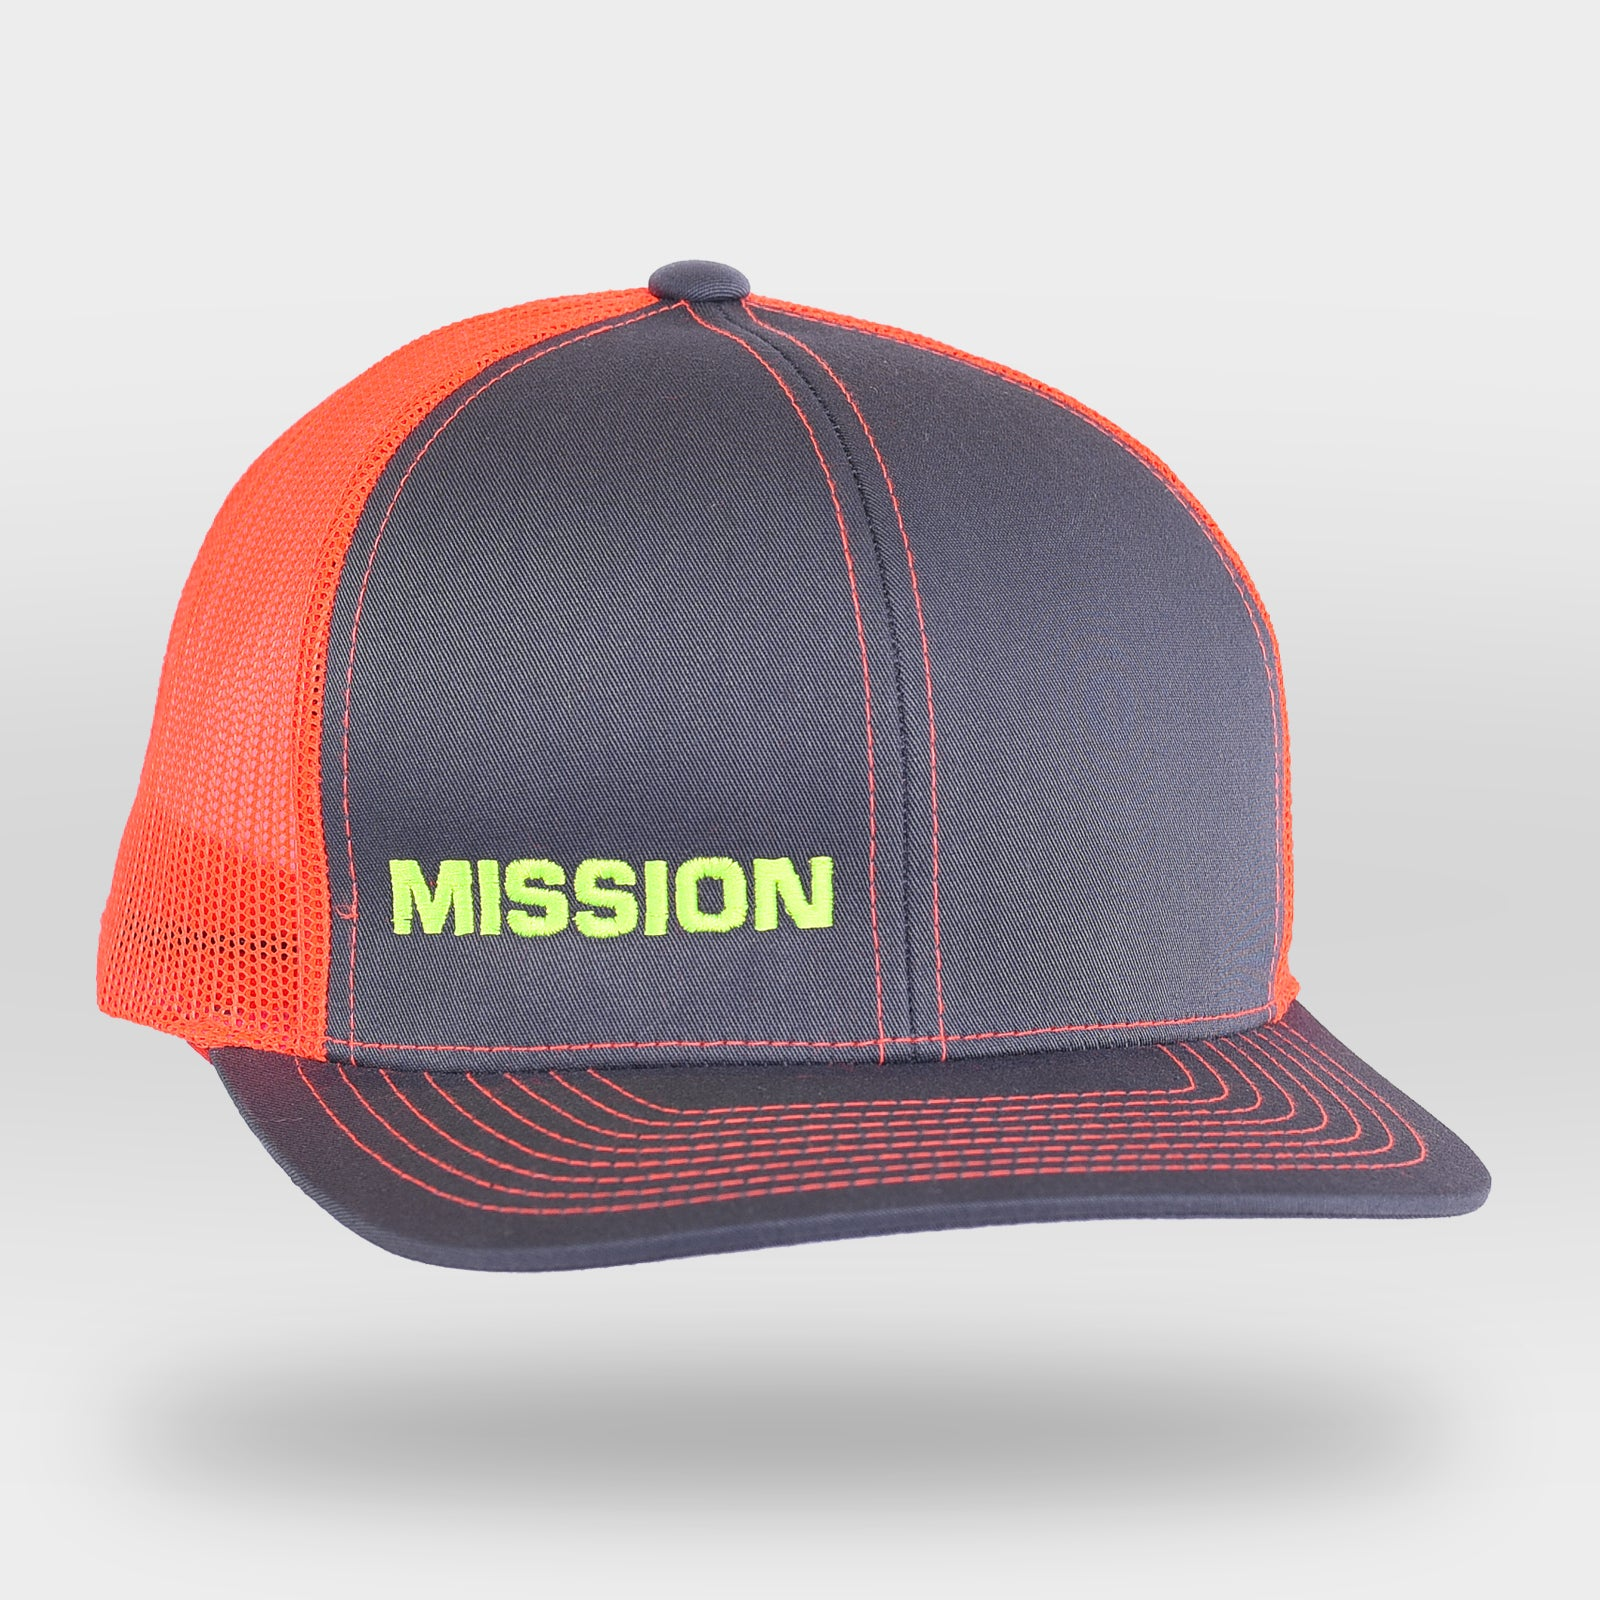 Neon Orange MISSION Snapback Hat